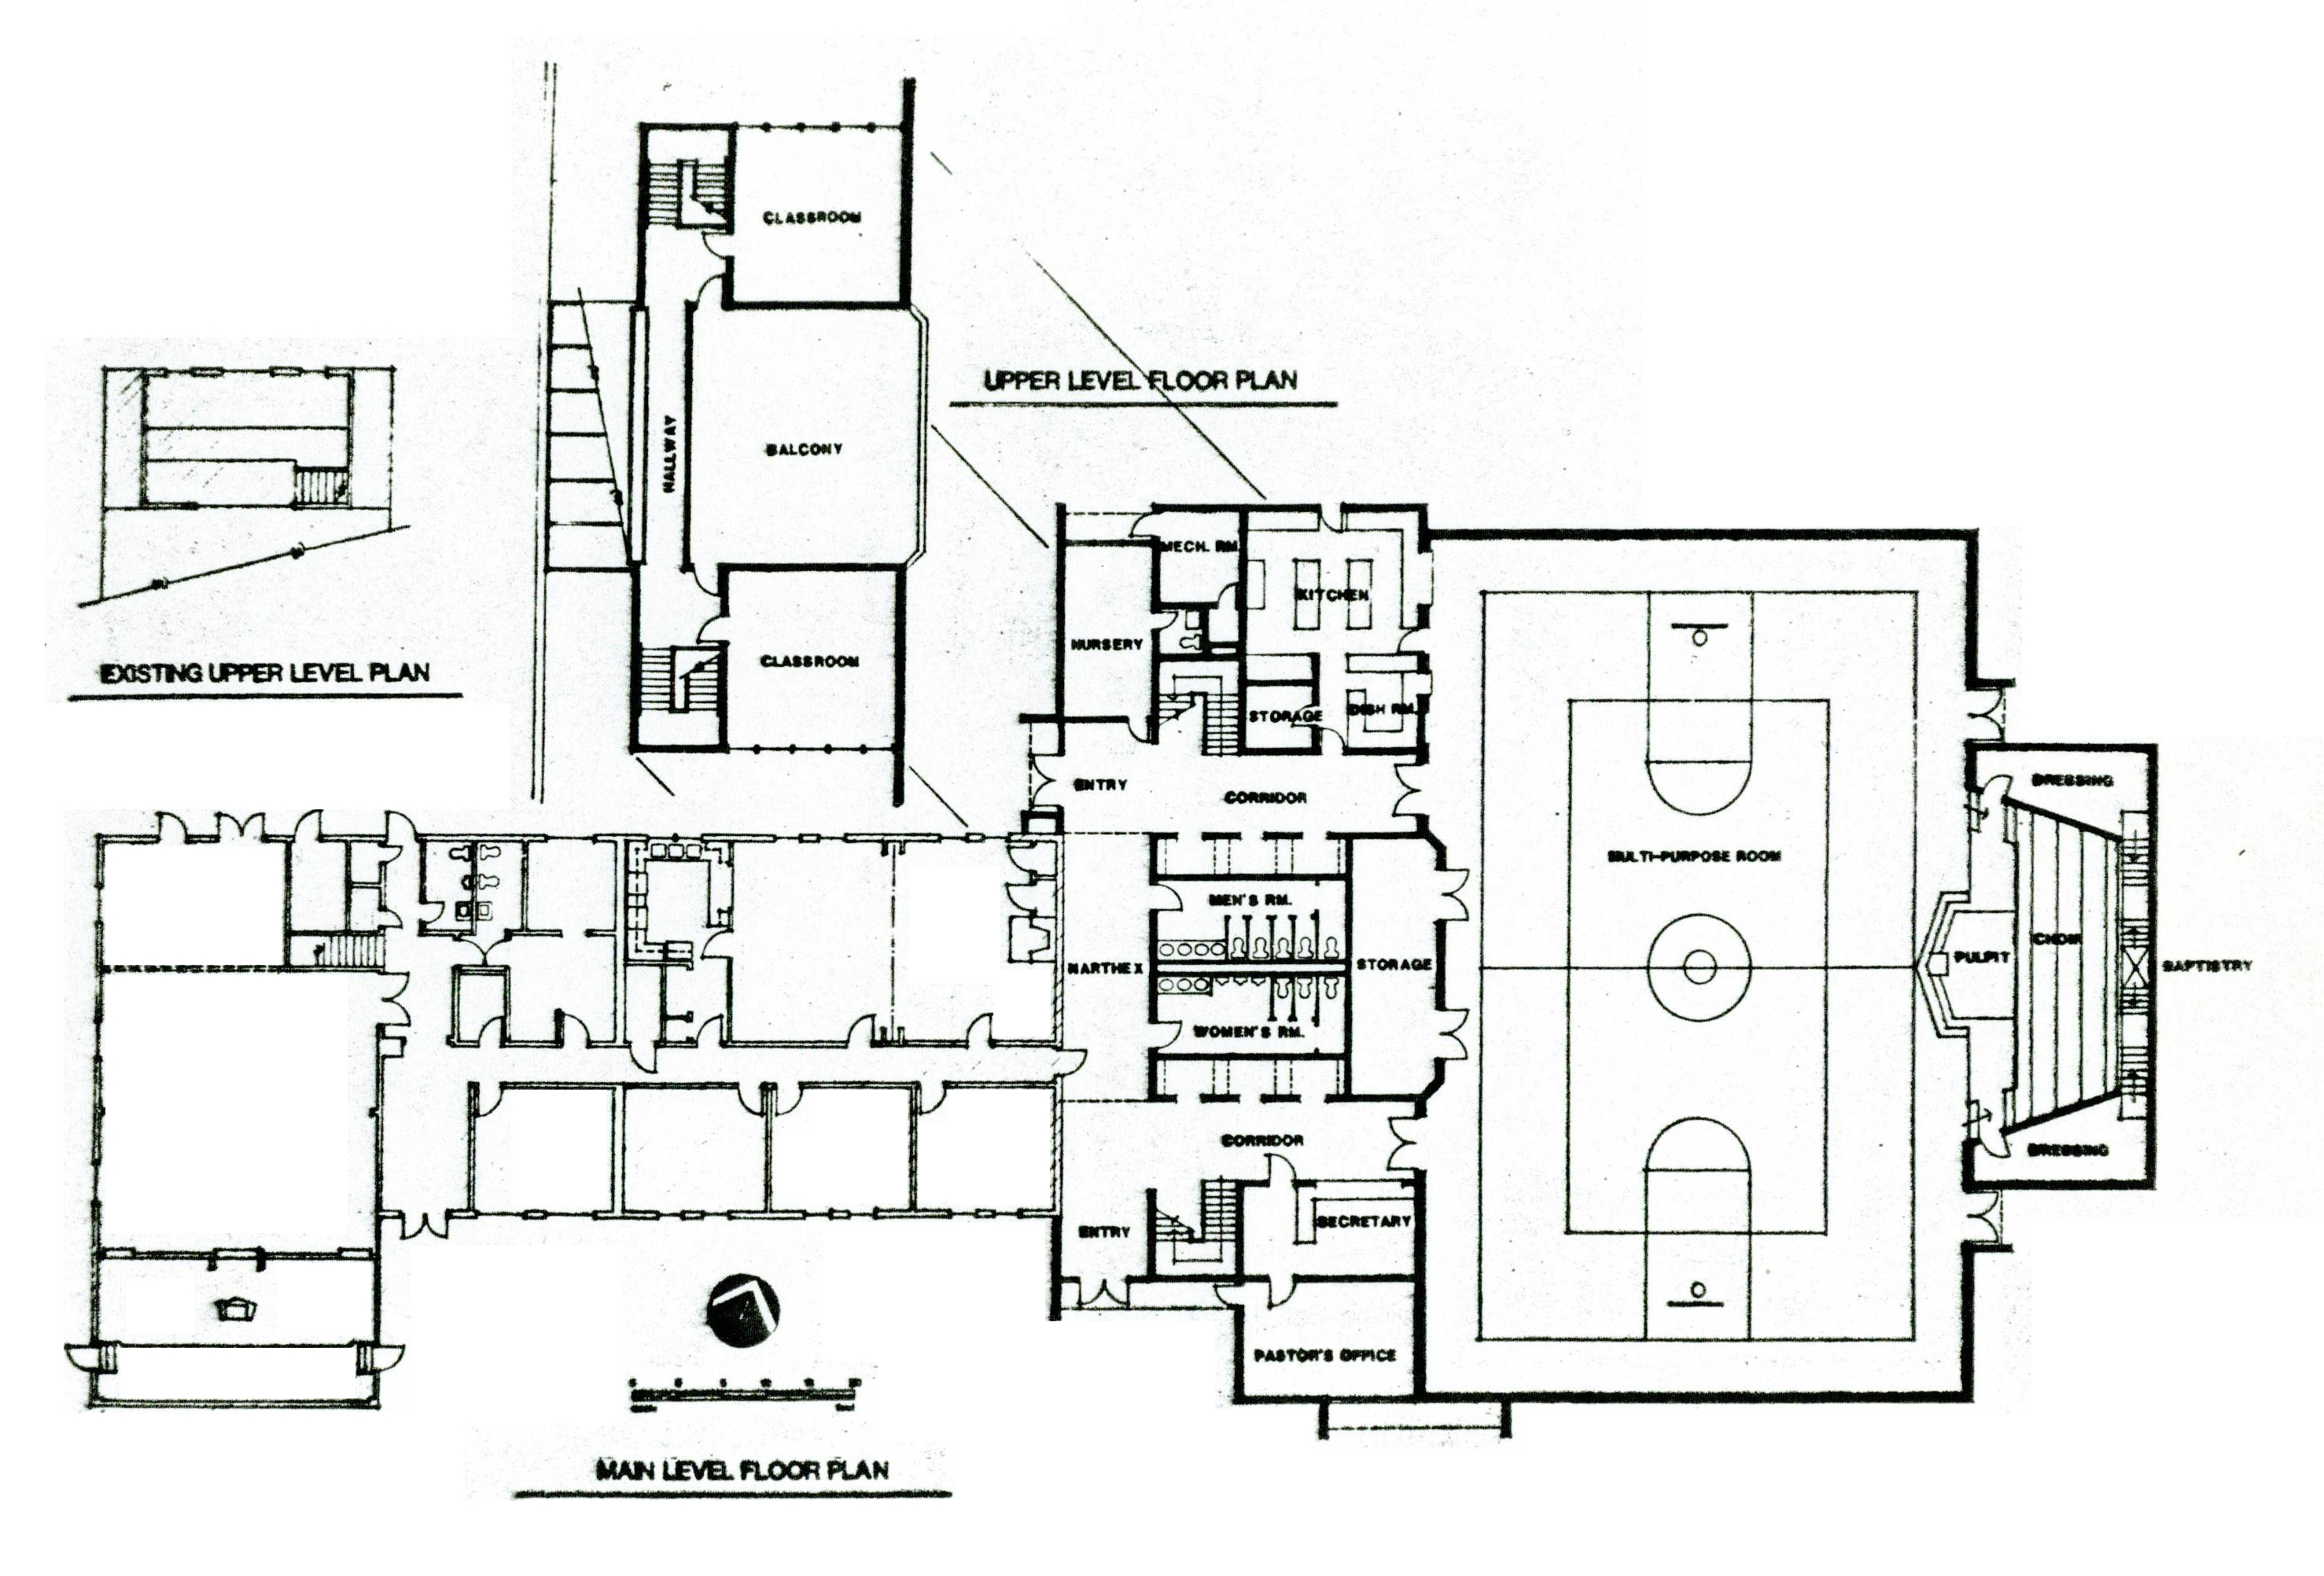 Church Floor Plan Designs Home Design  Elizabeth Horlemann